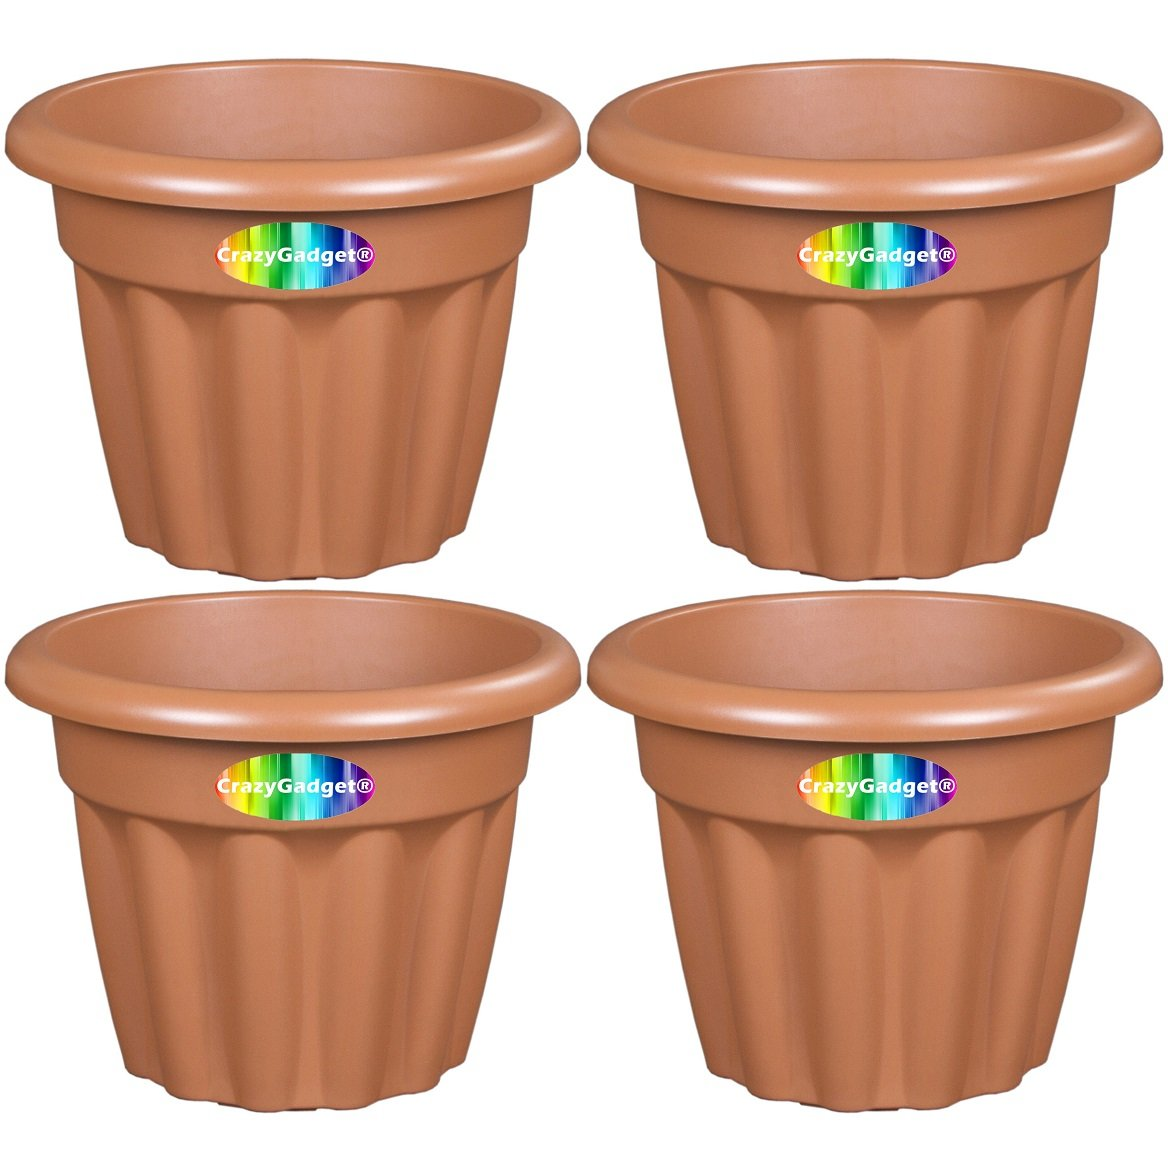 4 x CrazyGadget Large Planter Round Plastic Garden Flower Plant Herb Pot Contemporary Design Style - Indoor and Outdoor (Lime Green, 25cm)